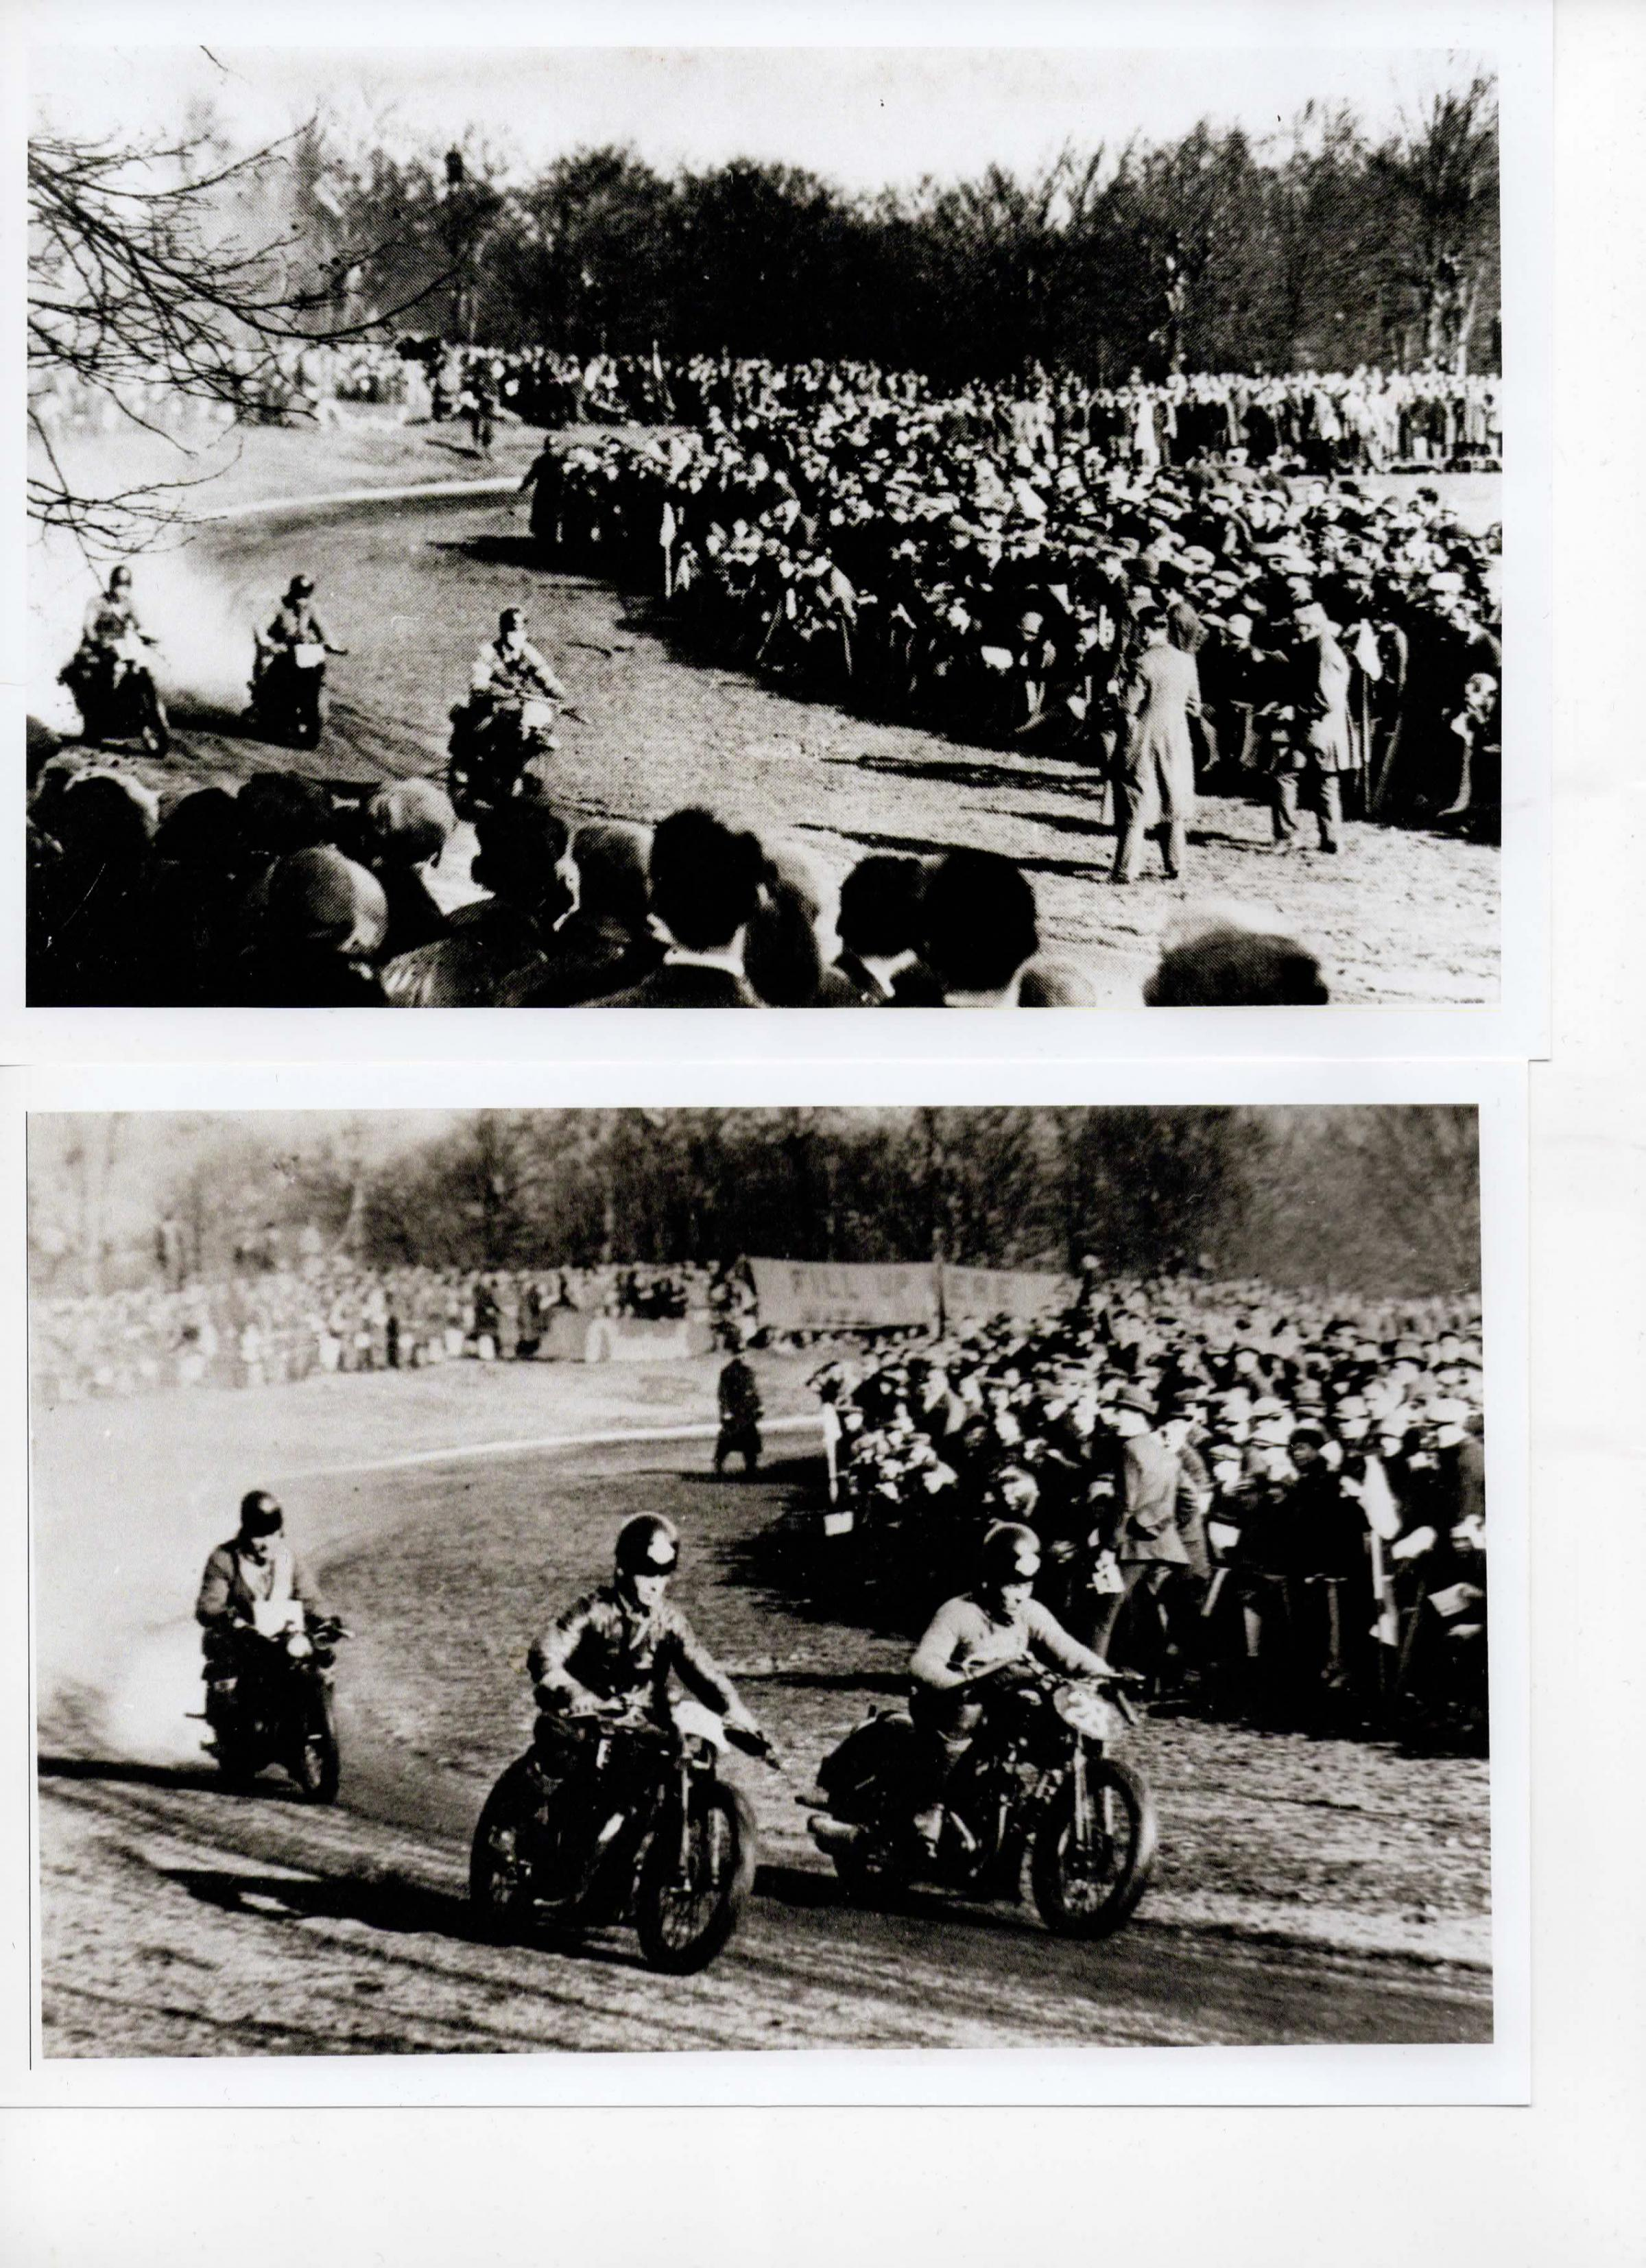 In 1930, just two years after Britain's first Speedway meeting was held in High Beech, Ernie Miller opened Epping Forest's first tea hut in Fairmead Road.